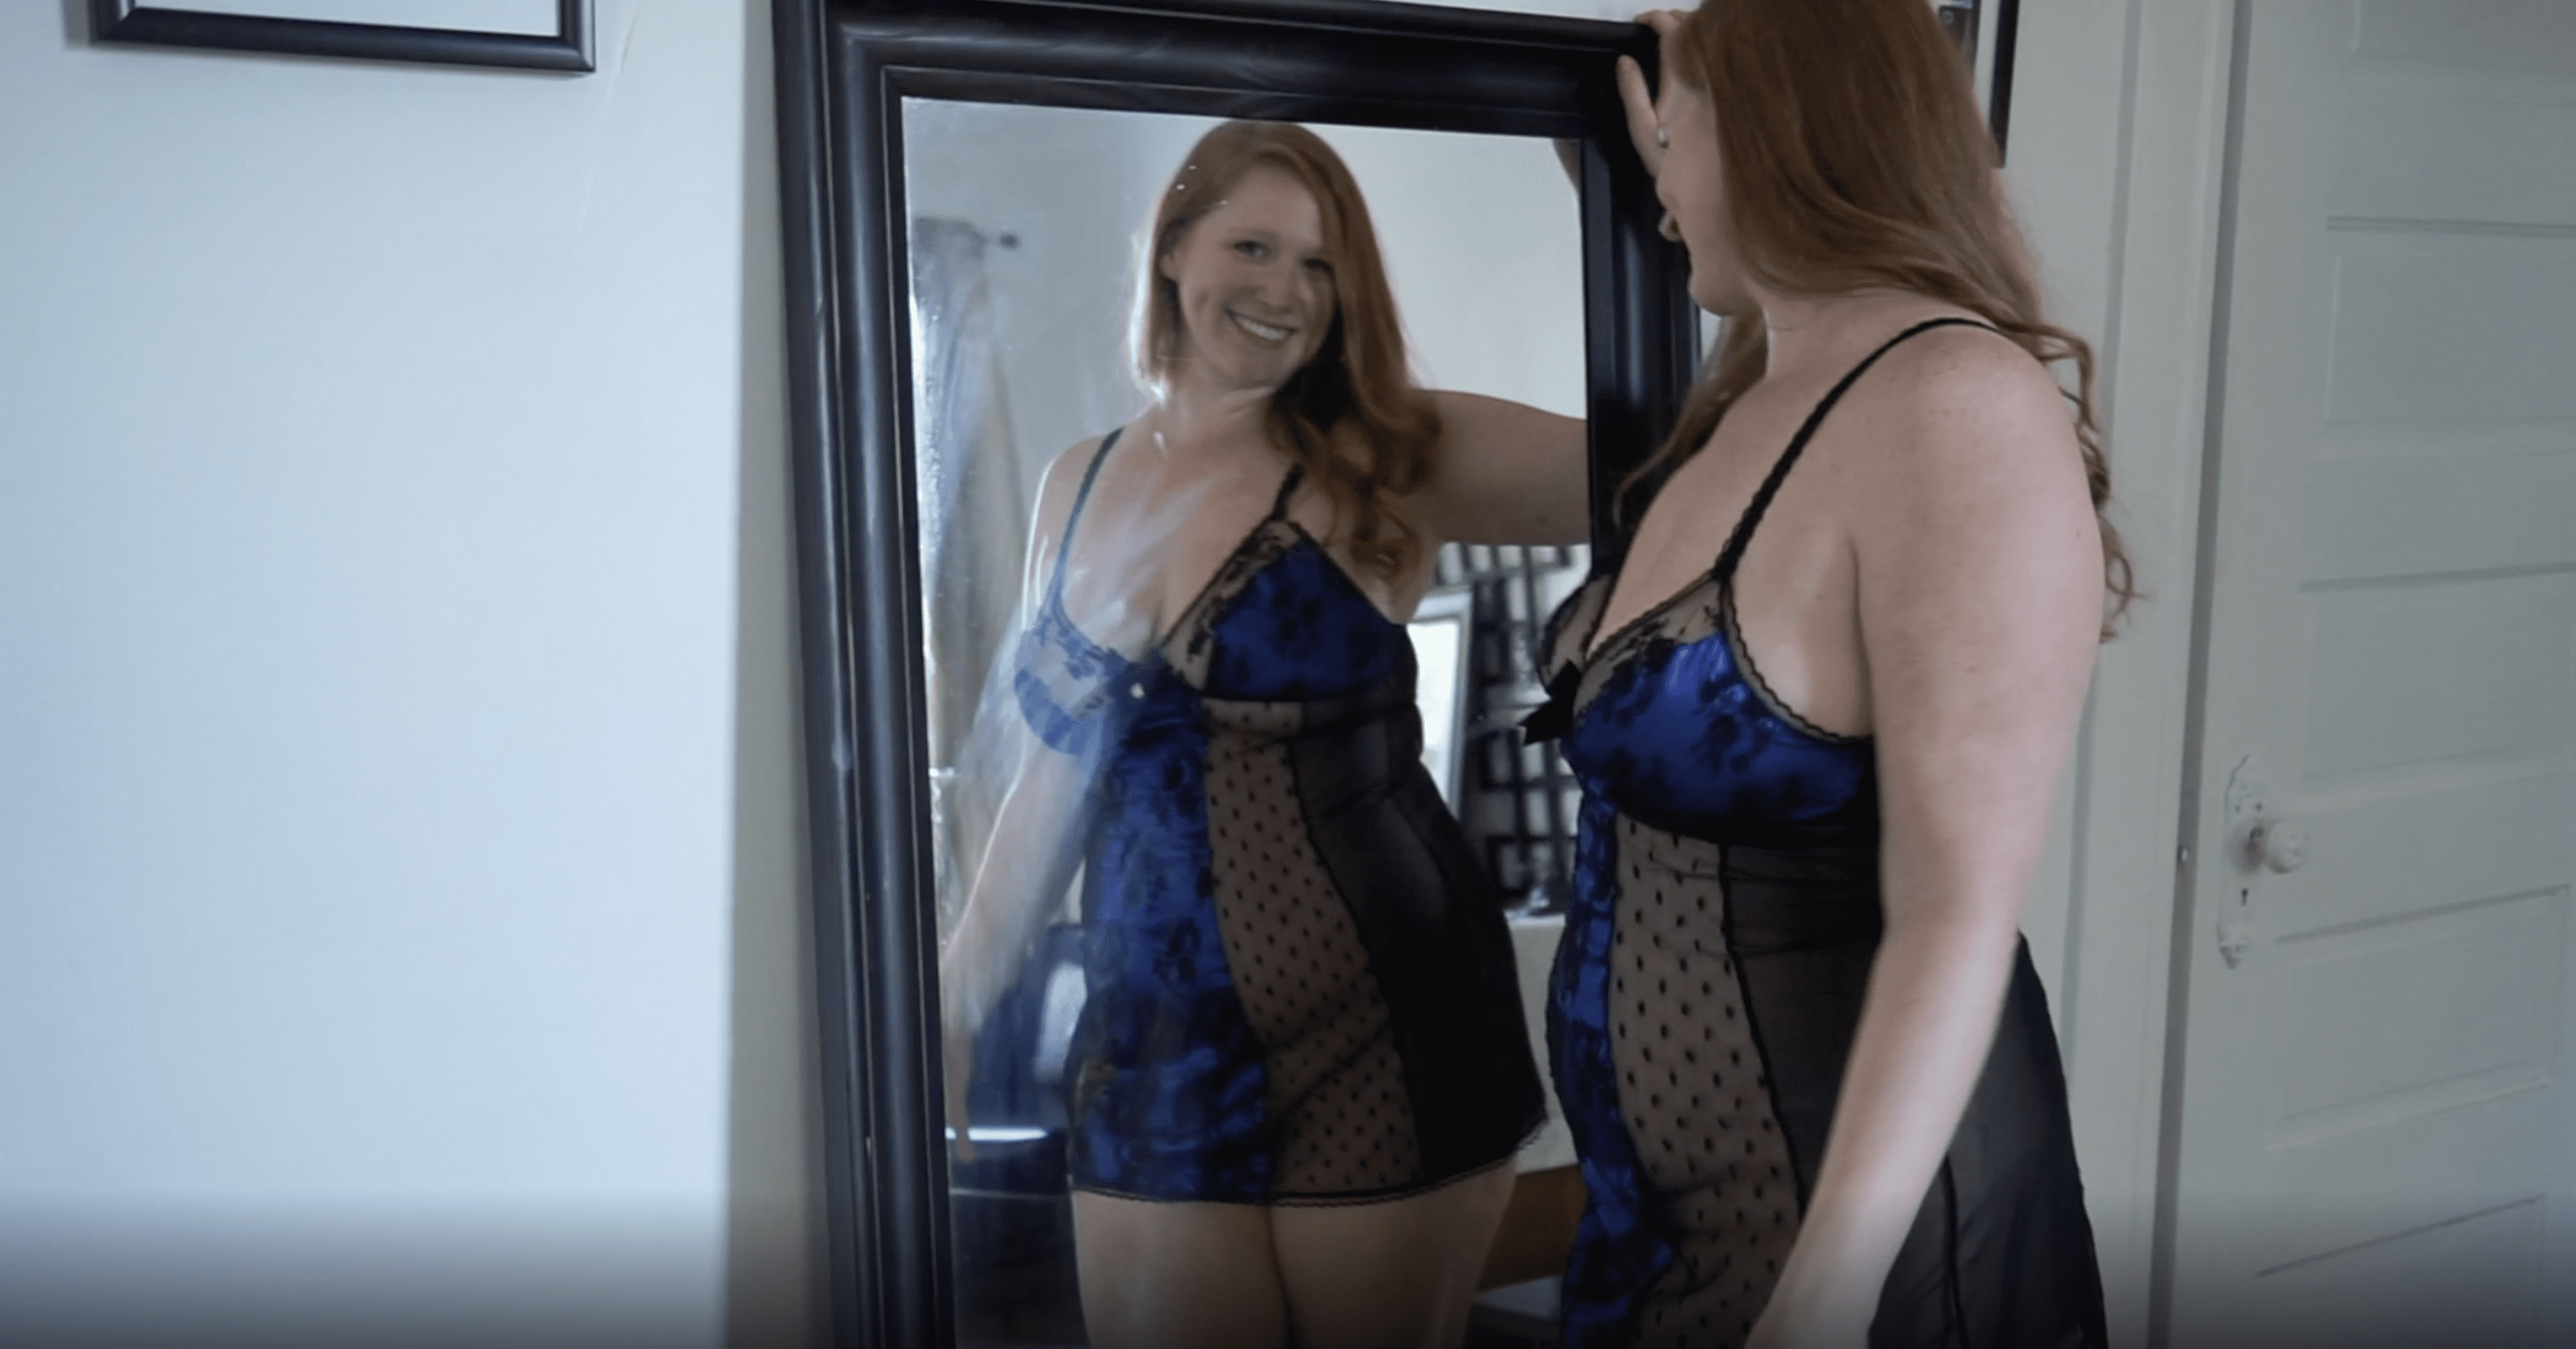 May 2021 | Black & Blue Lace Nightie in Front of Mirror